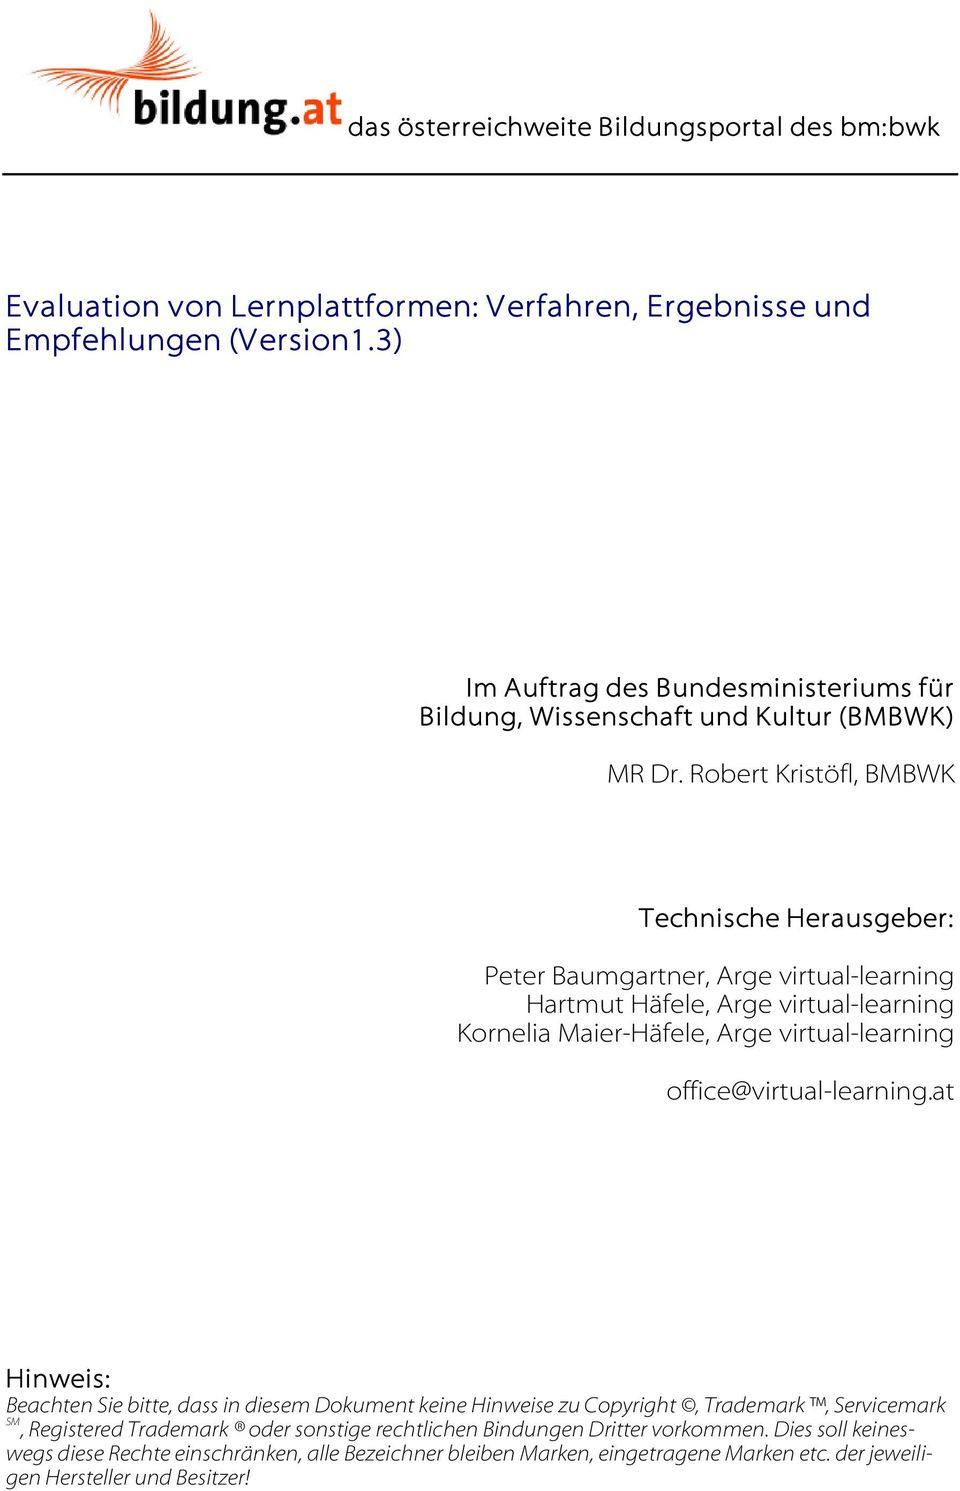 Robert Kristöfl, BMBWK Technische Herausgeber: Peter Baumgartner, Arge virtual-learning Hartmut Häfele, Arge virtual-learning Kornelia Maier-Häfele, Arge virtual-learning